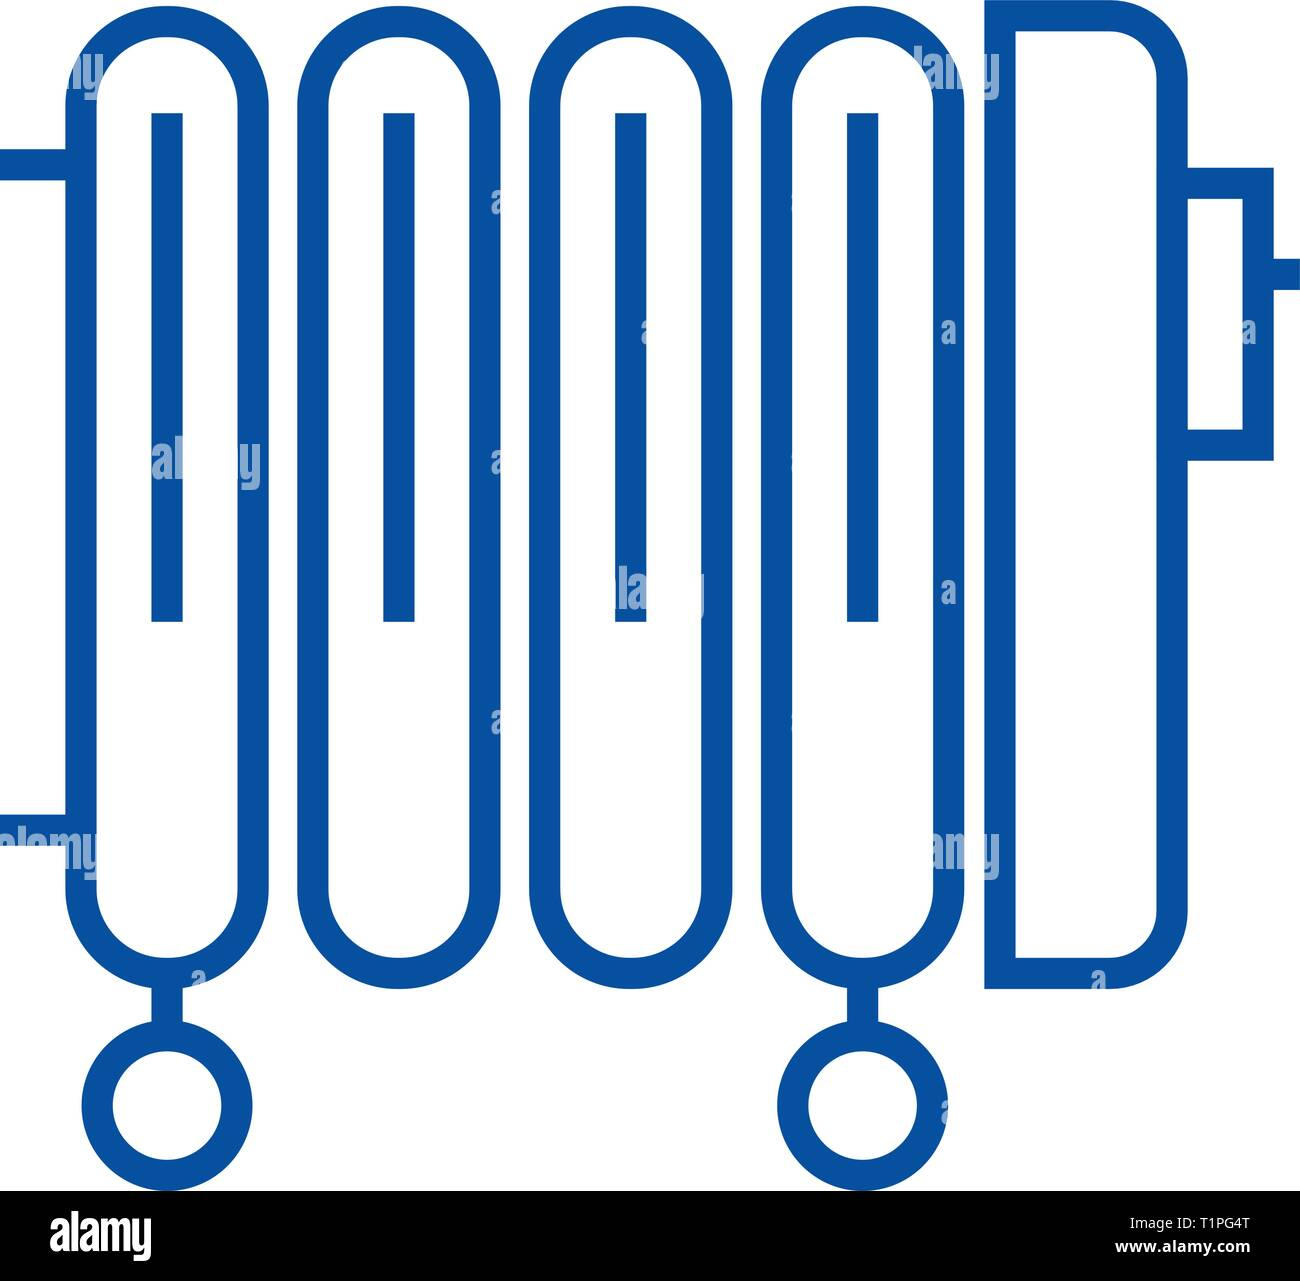 Radiator,oil heater line icon concept. Radiator,oil heater flat  vector symbol, sign, outline illustration. - Stock Vector